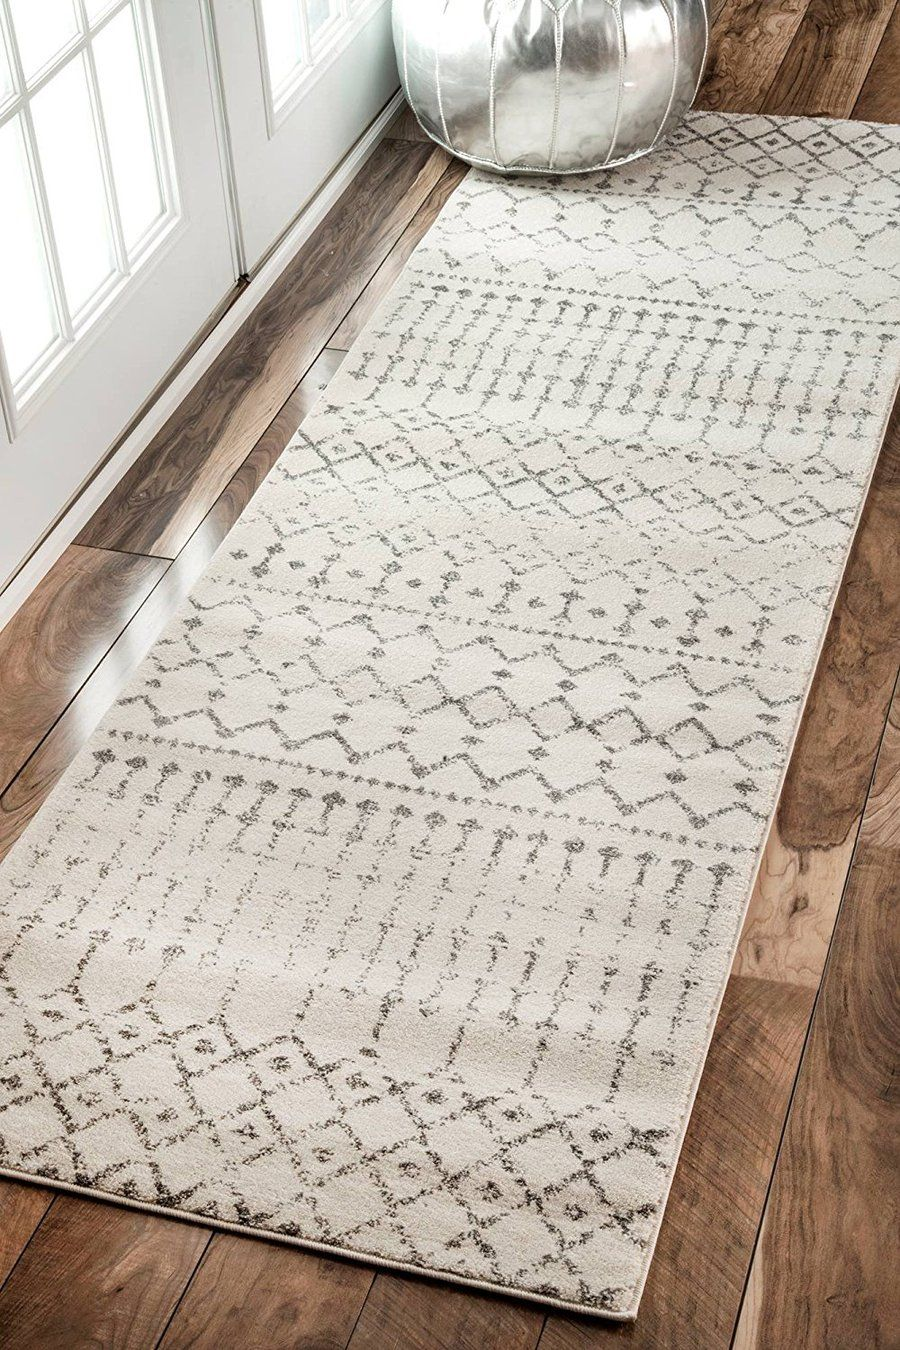 Premium Transitional Vintage Ivory Gray Area Rugs In 2021 Stair Runner Carpet Area Rugs Rugs On Carpet